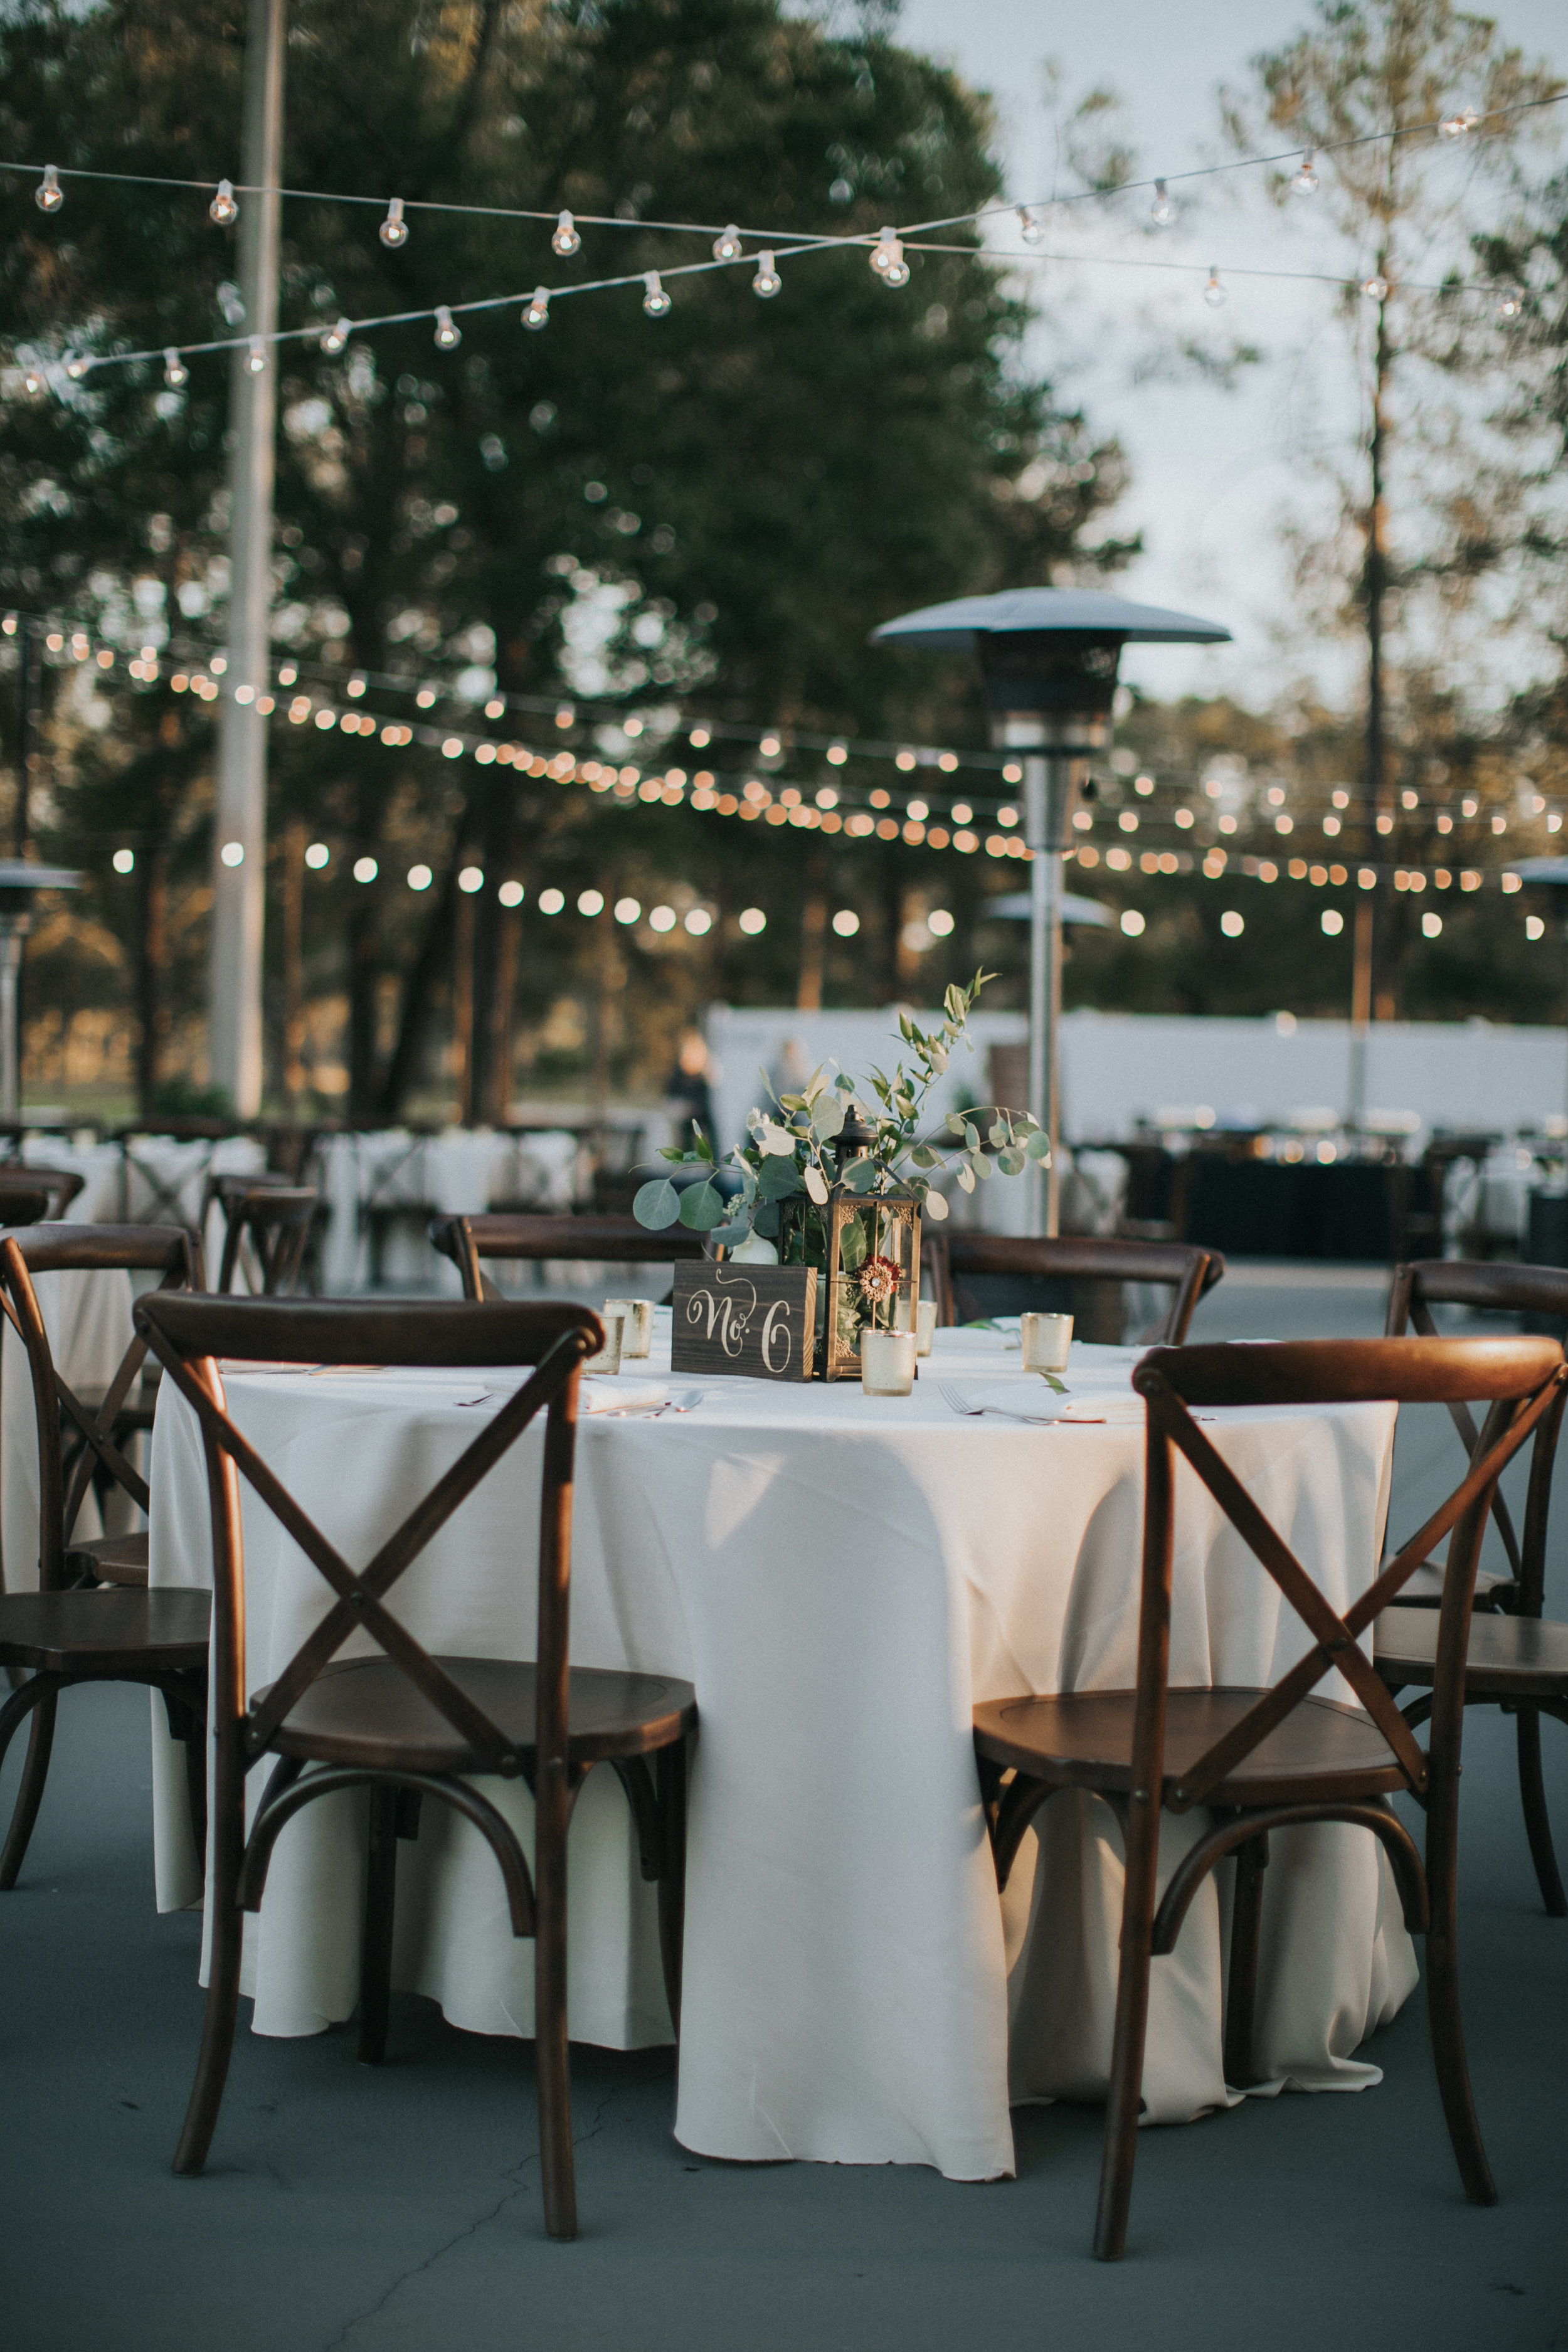 Outdoor wedding reception with market lights